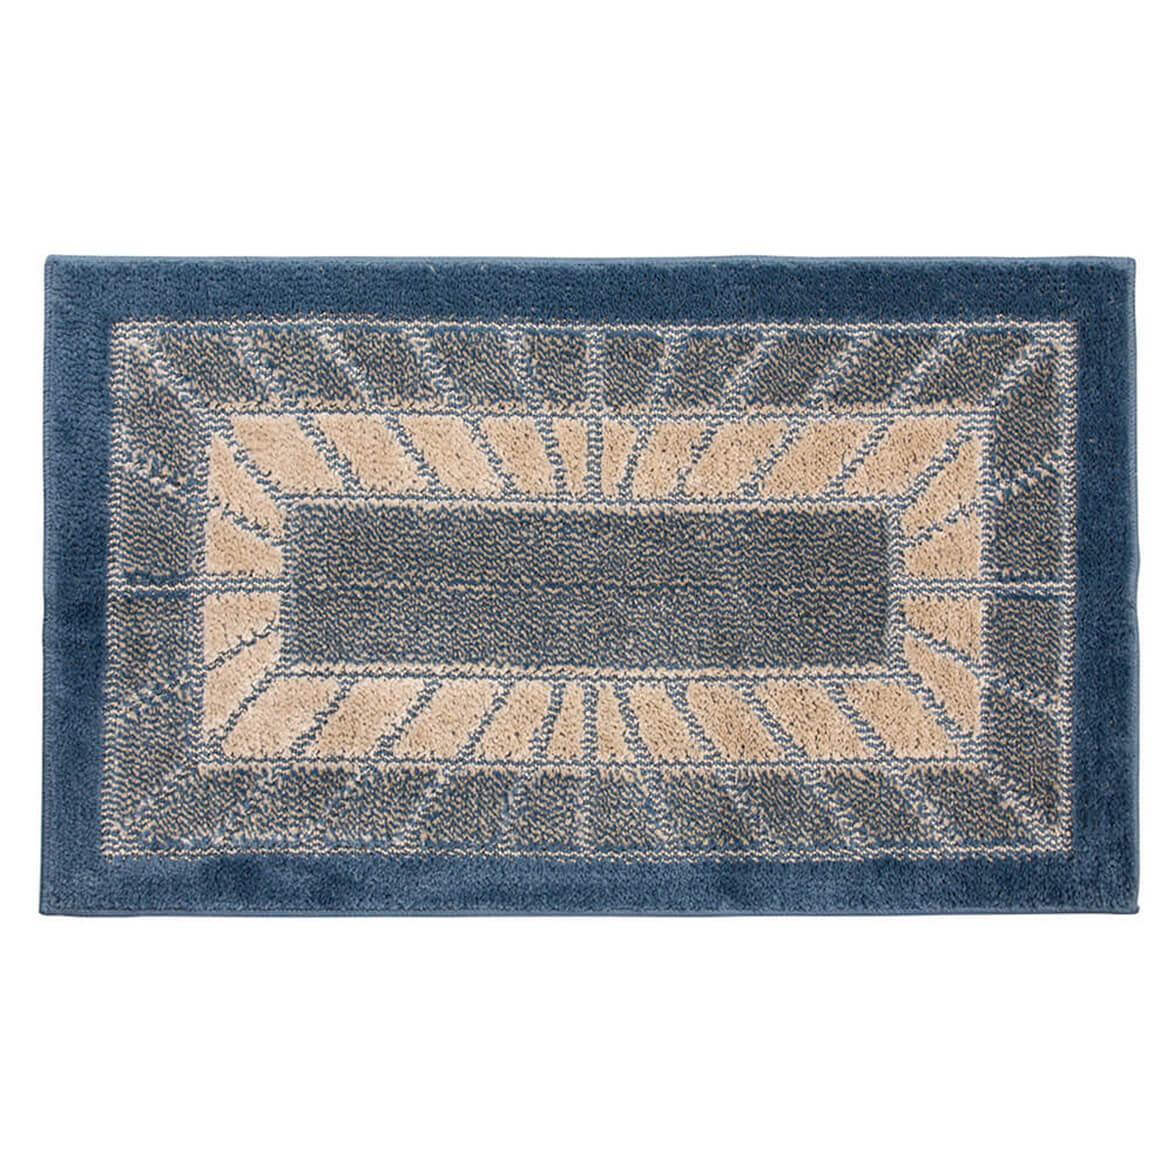 Starburst Rug Coupons, Discount Codes